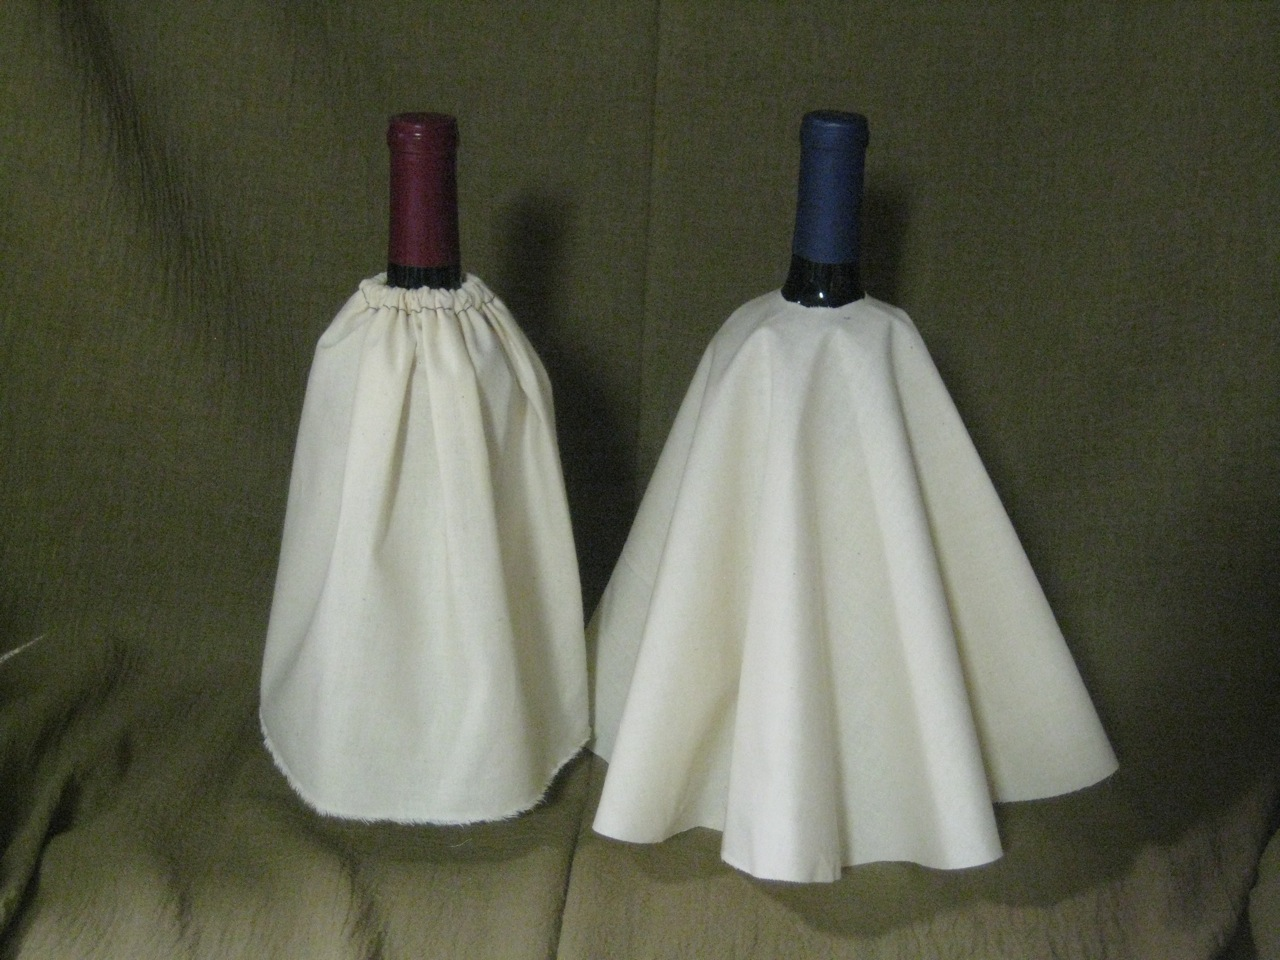 Two Basic Skirt Shapes: Rectangle (left) and Circle (right)